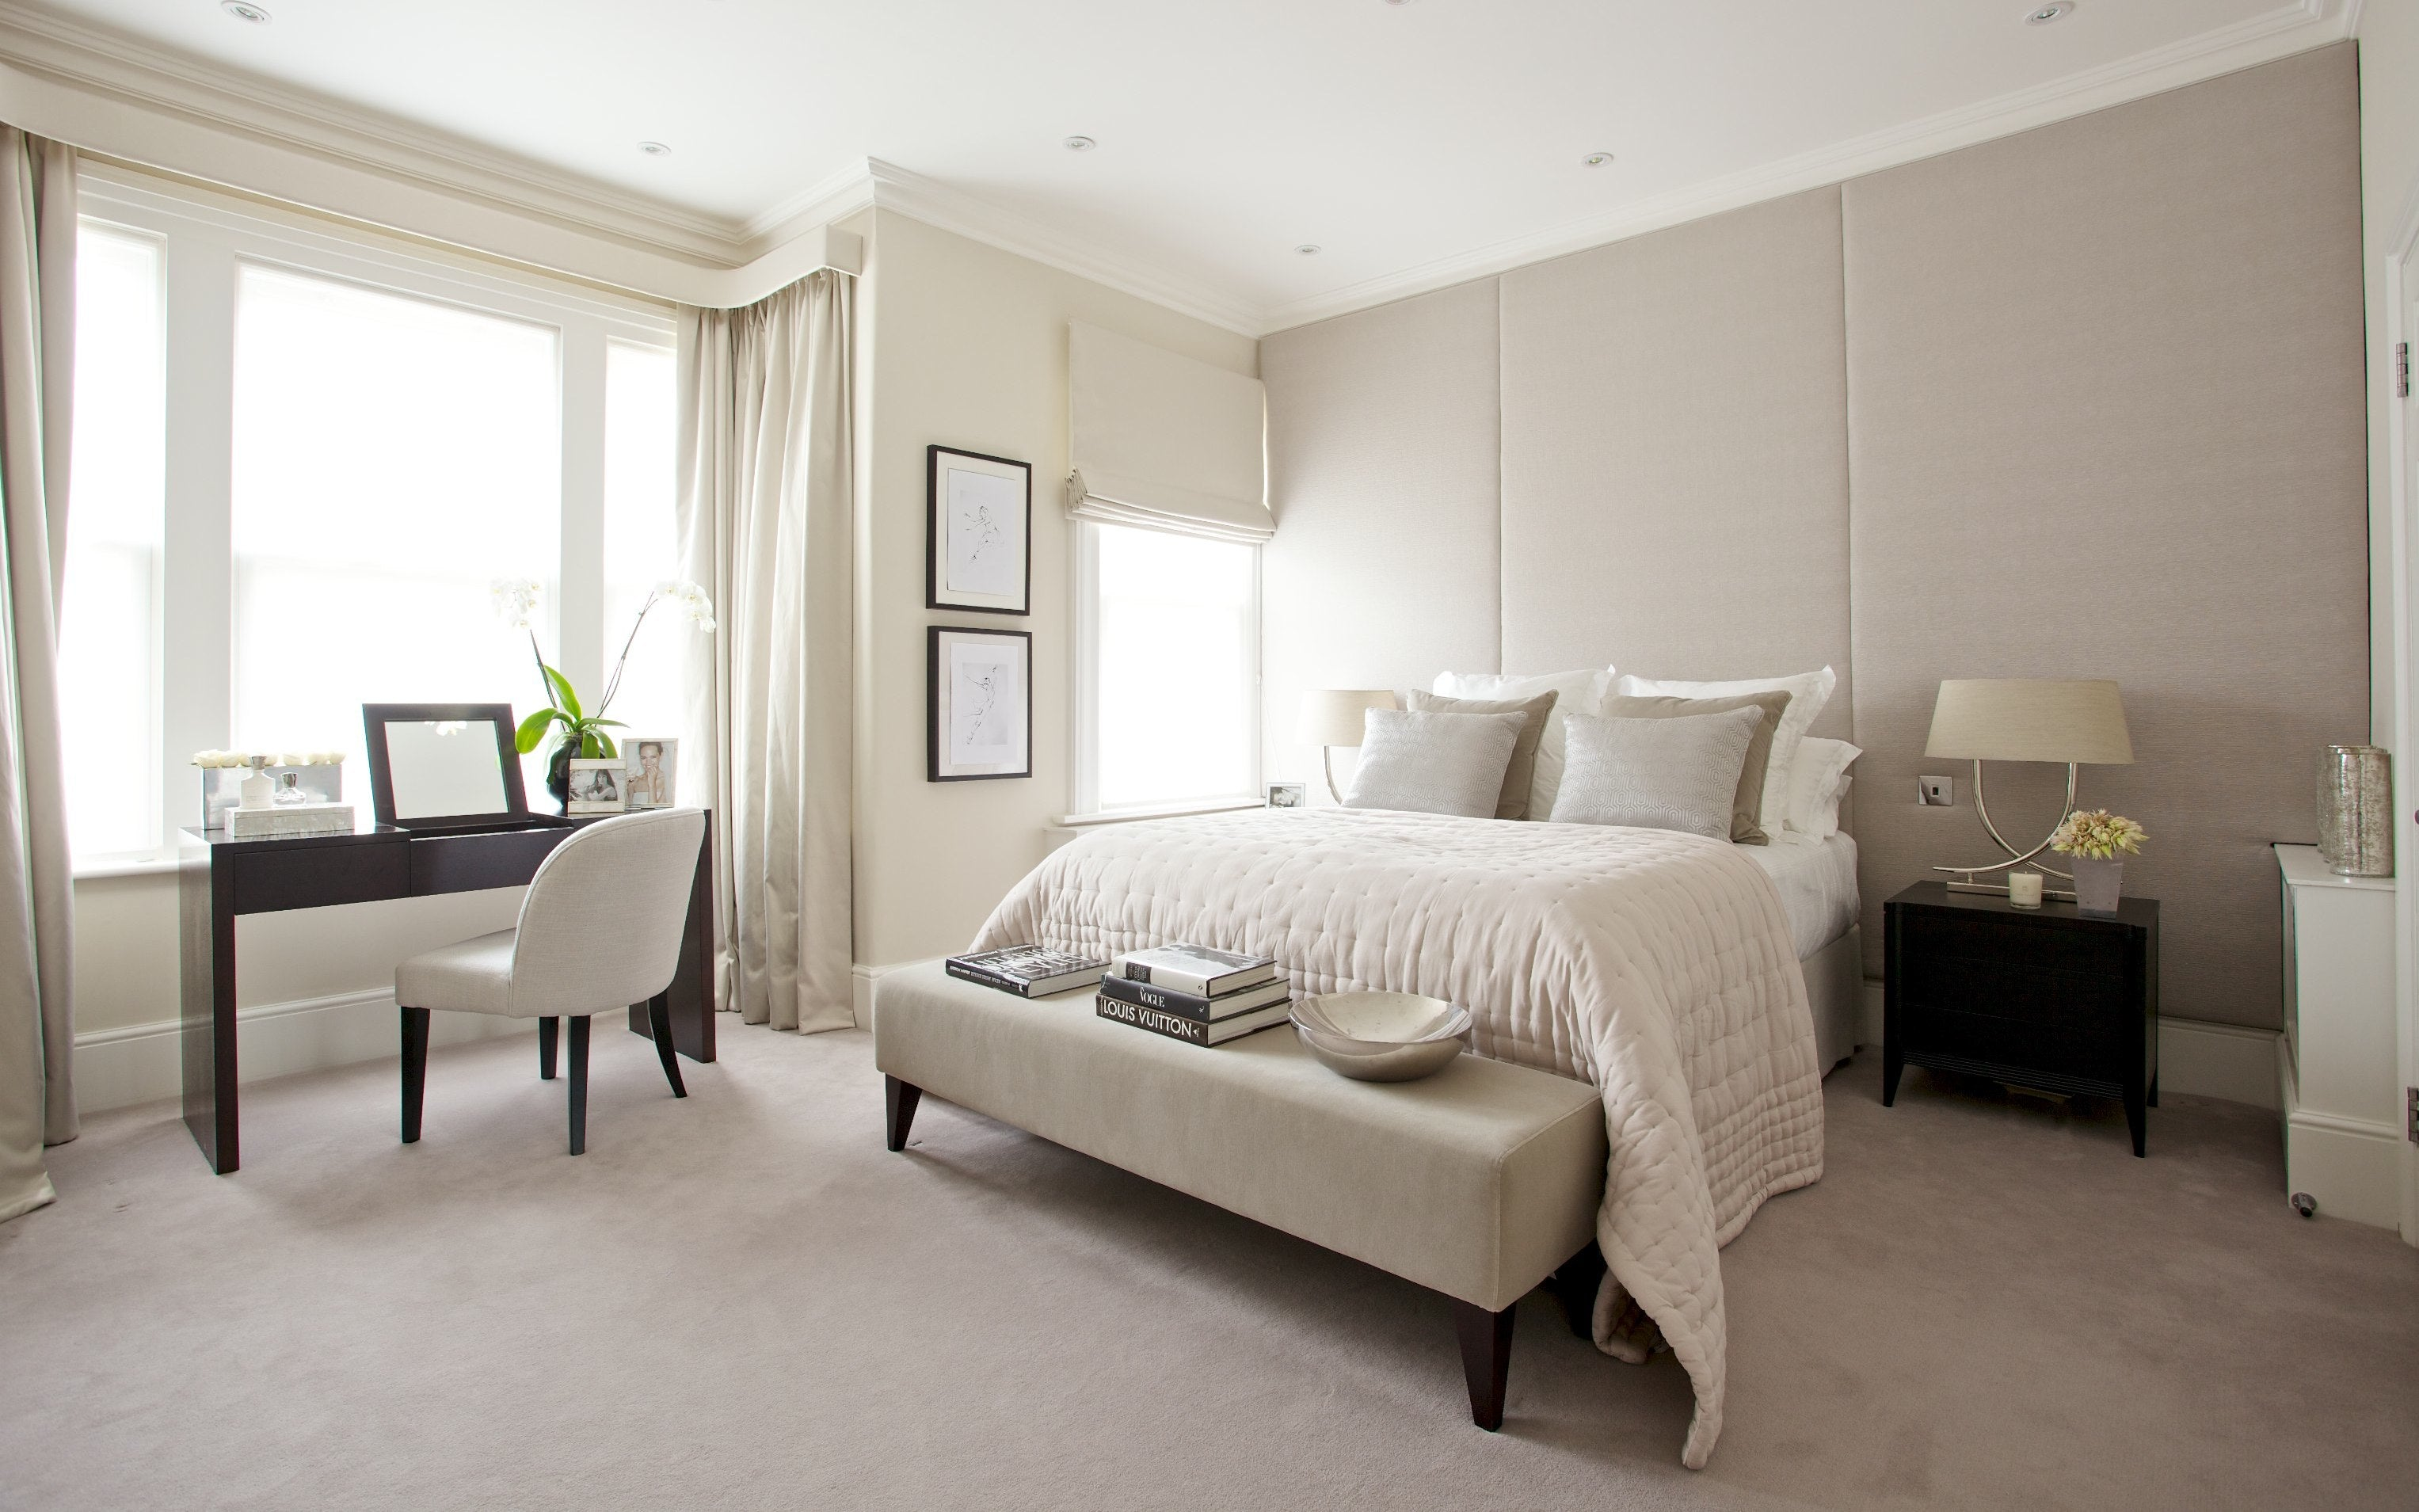 Ivory Bedroom Colour Scheme - Neutral Bedroom Colour Ideas - LuxDeco.com